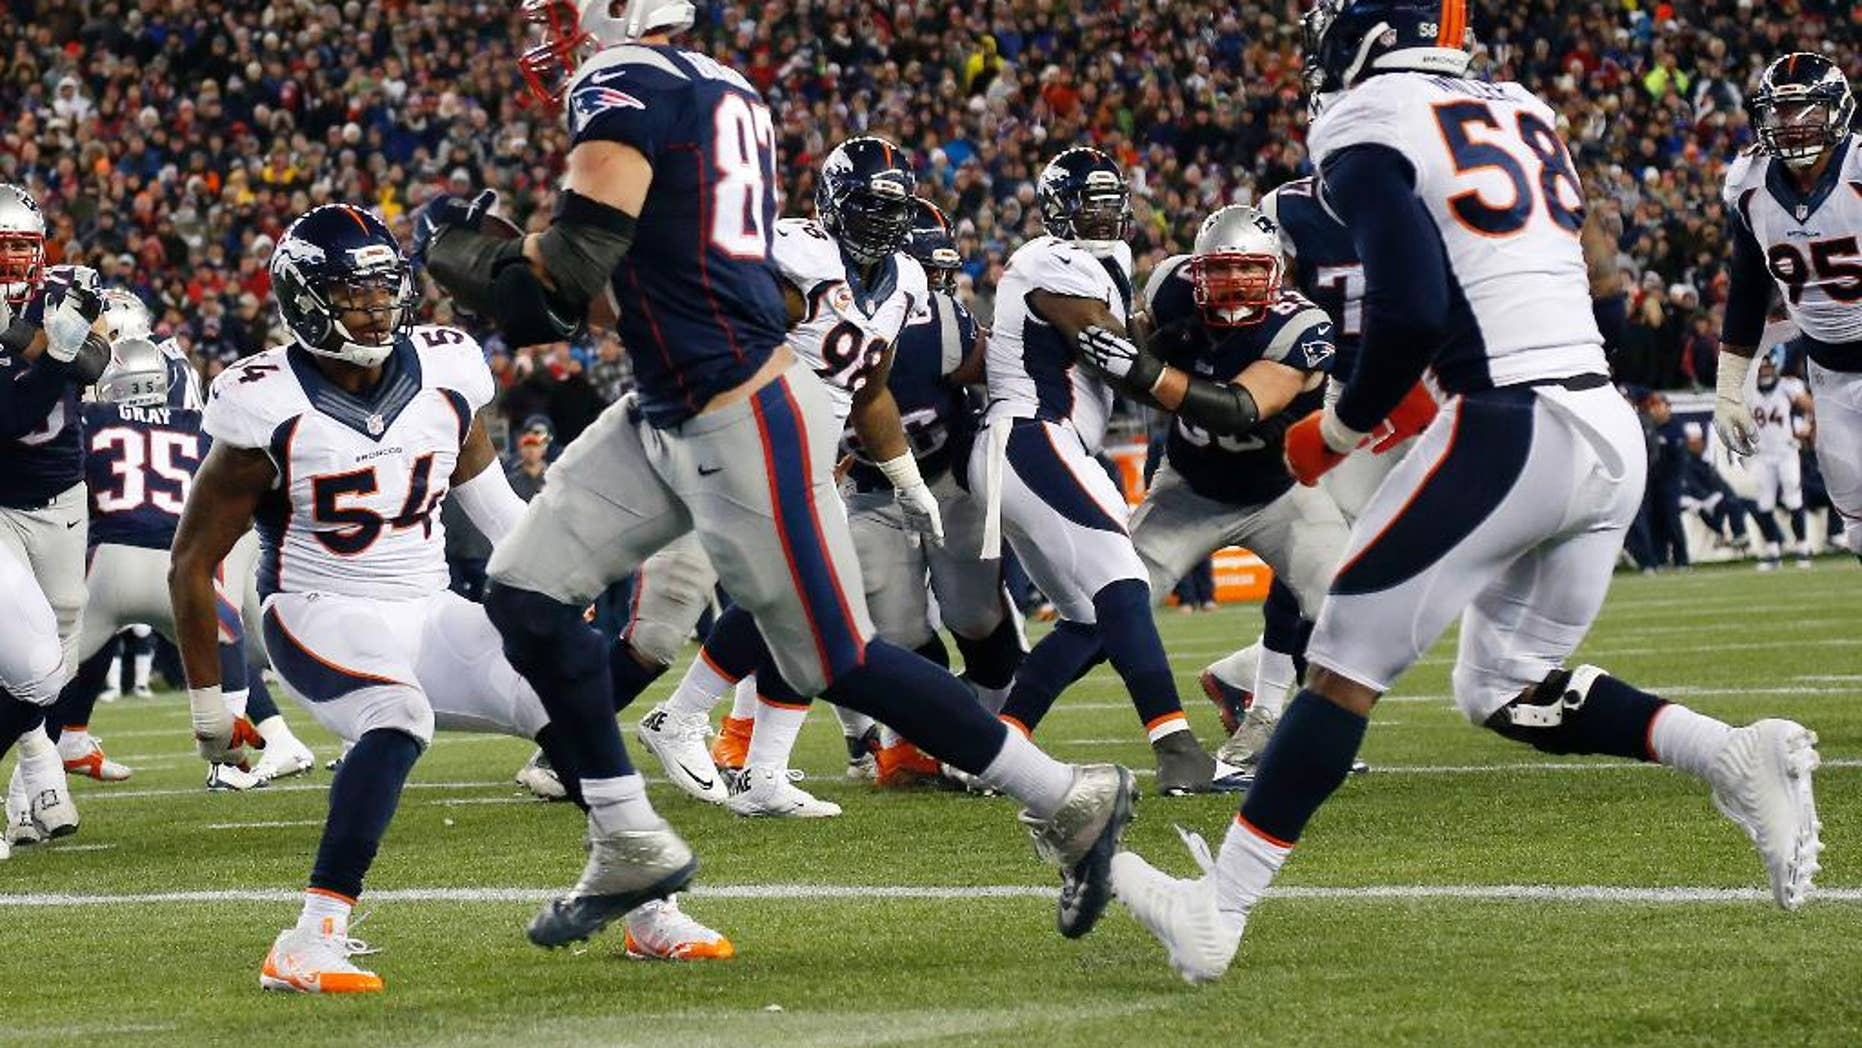 New England Patriots tight end Rob Gronkowski, center, catches a touchdown pass from quarterback Tom Brady between Denver Broncos outside linebackers Brandon Marshall (54) and Von Miller (58) in the second half of an NFL football game on Sunday, Nov. 2, 2014, in Foxborough, Mass. (AP Photo/Elise Amendola)